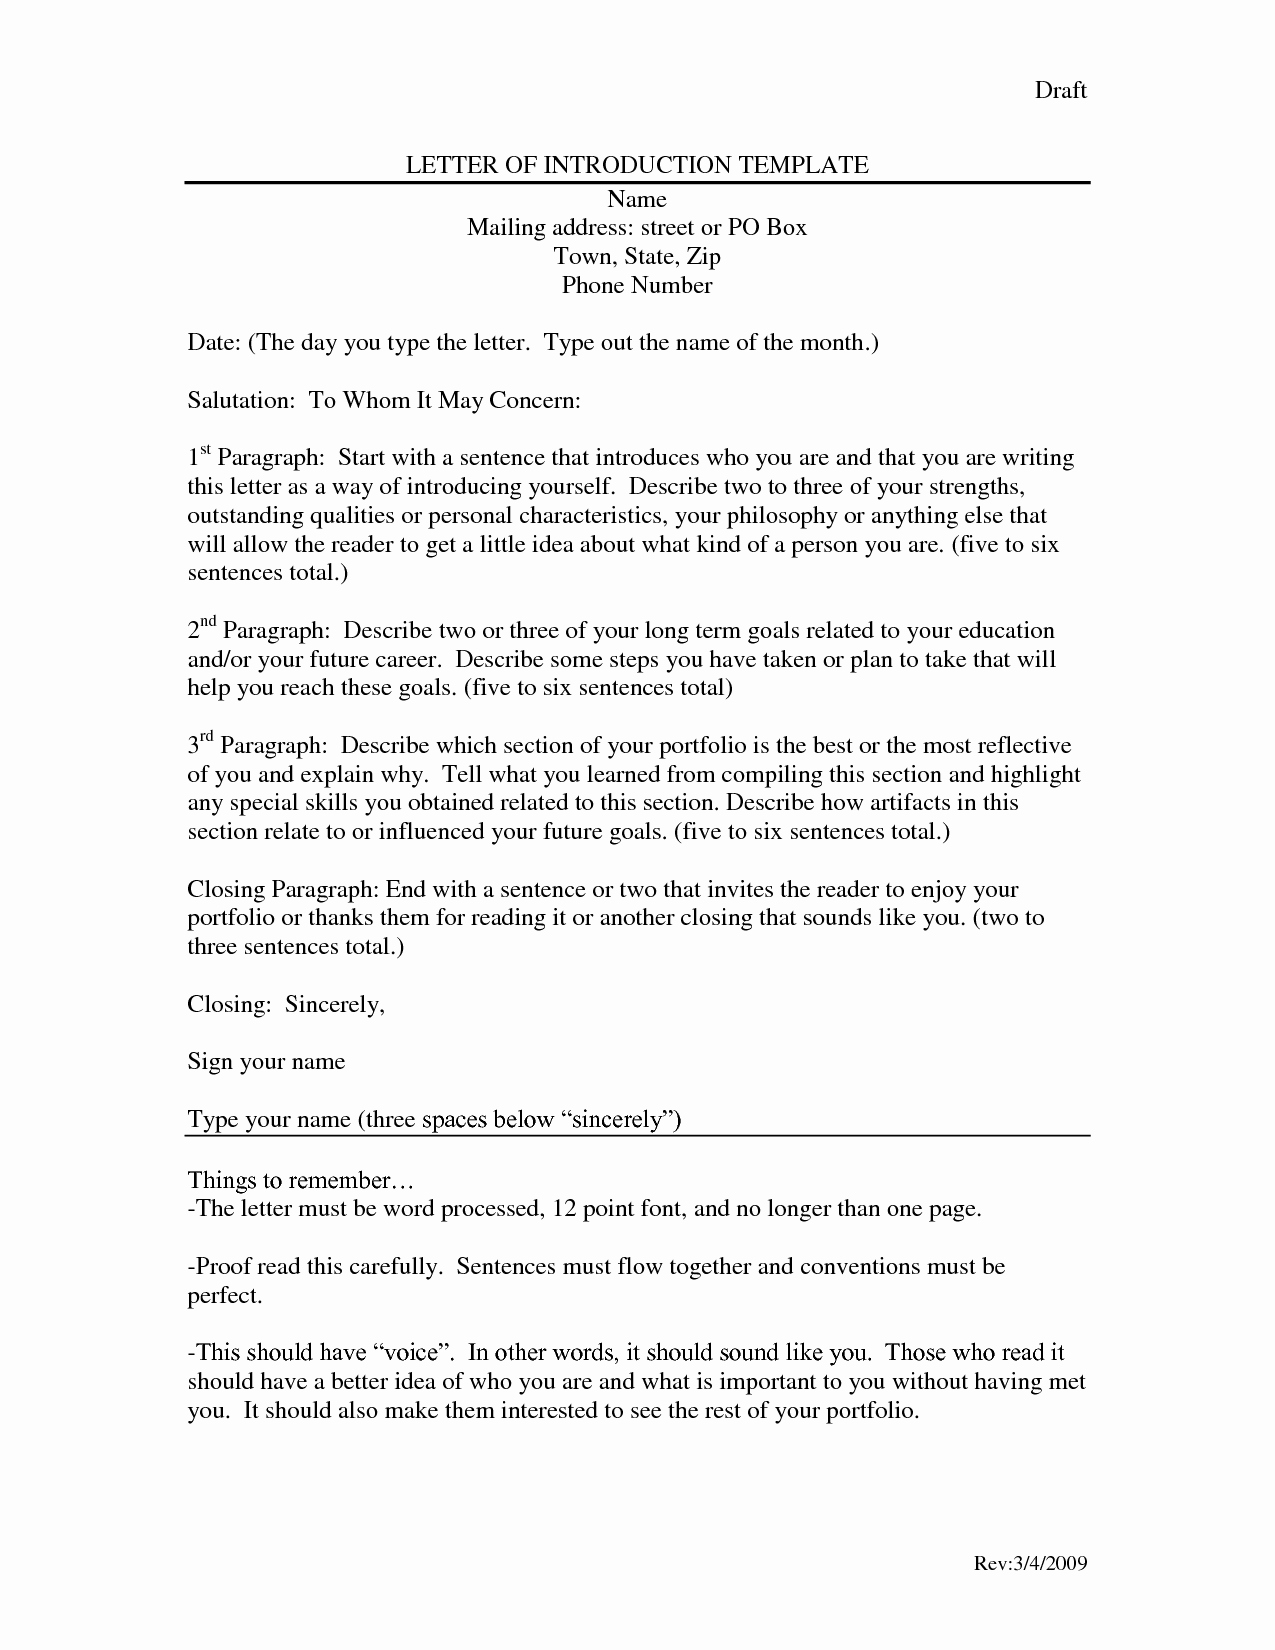 Letter Of Introduction Template Fresh Letter Introduction Template Dancingmermaid Yfzce92i